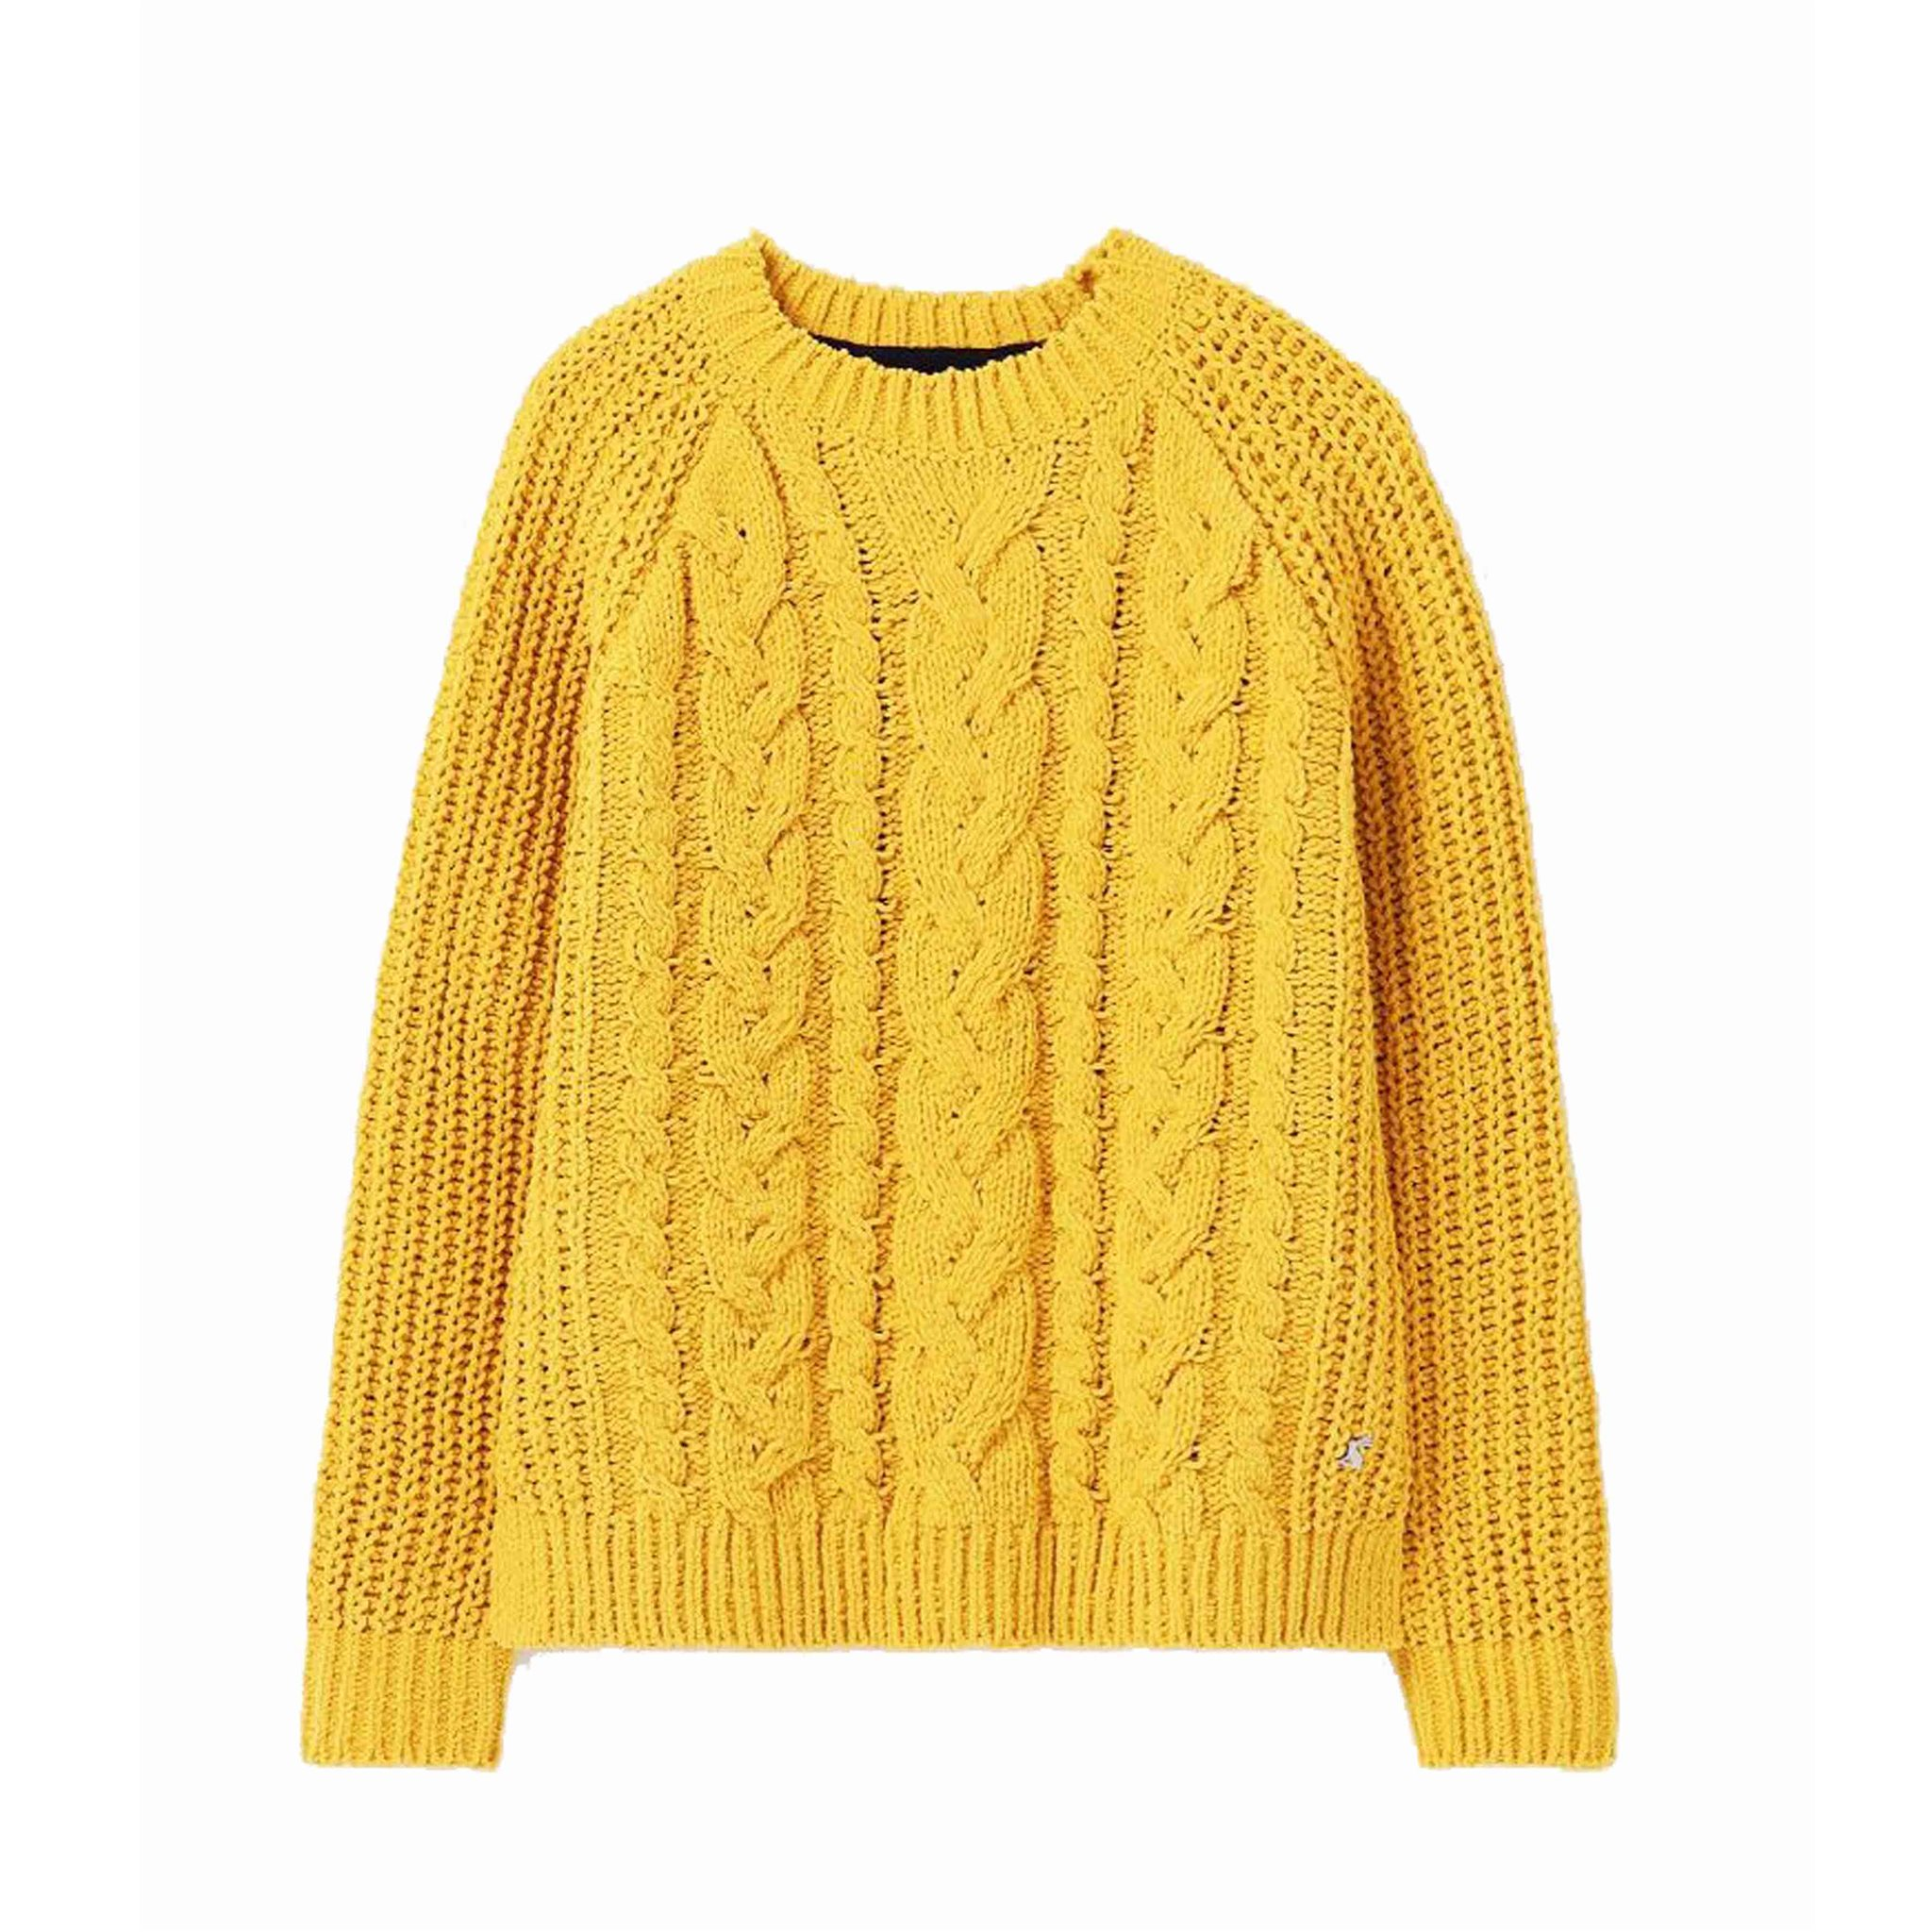 SEAFORD PULLOVER JOULES